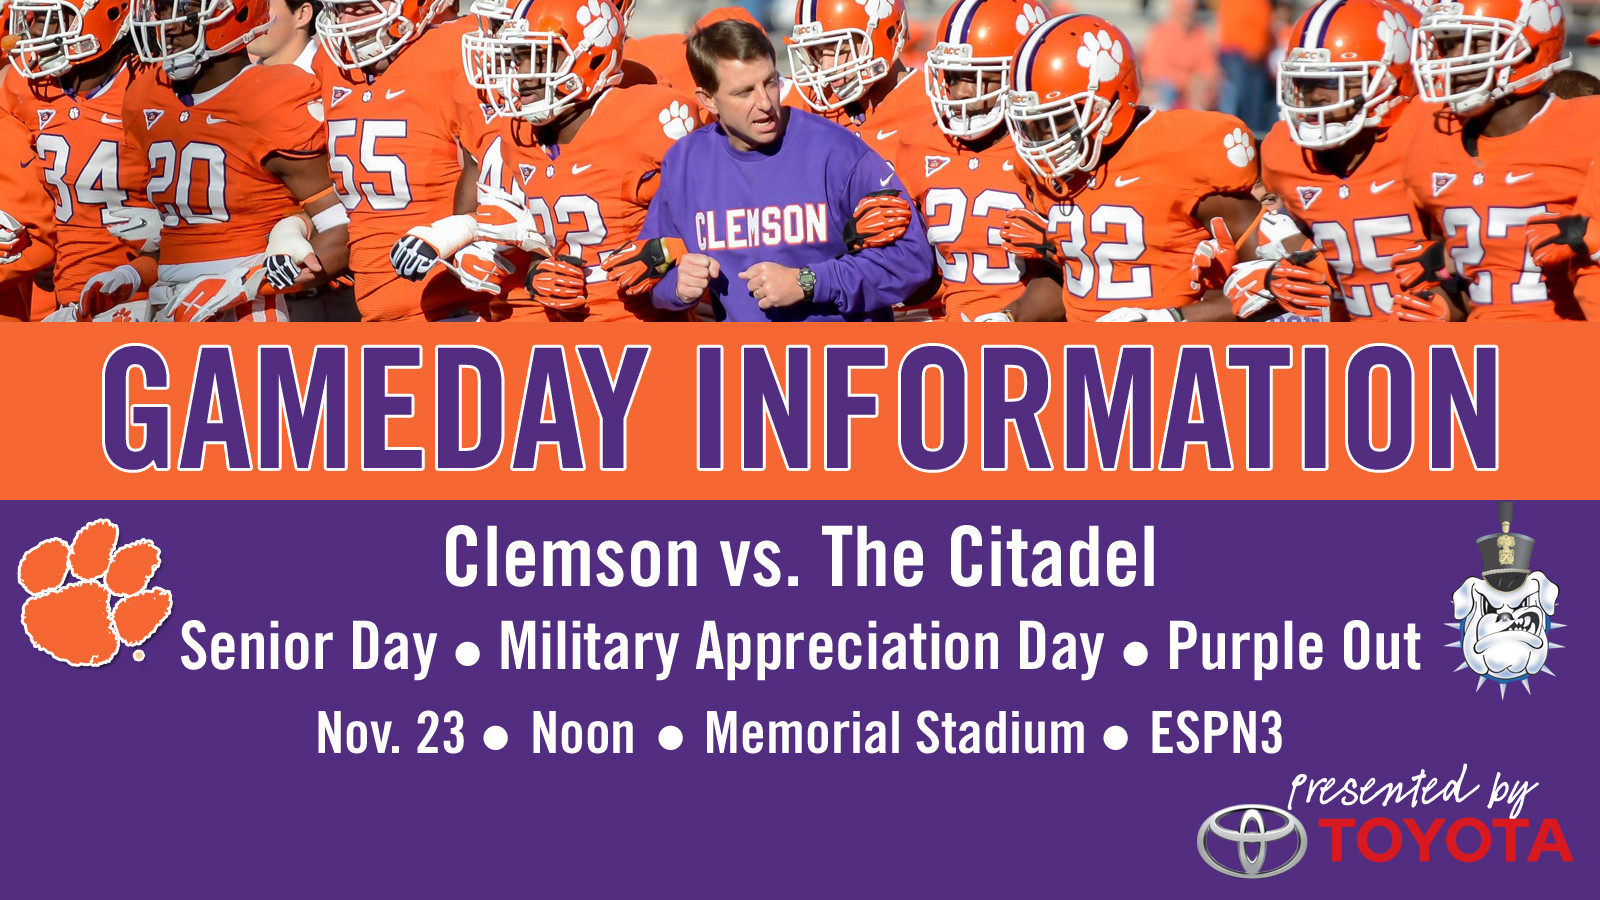 Clemson vs. The Citadel Football Gameday Information Guide